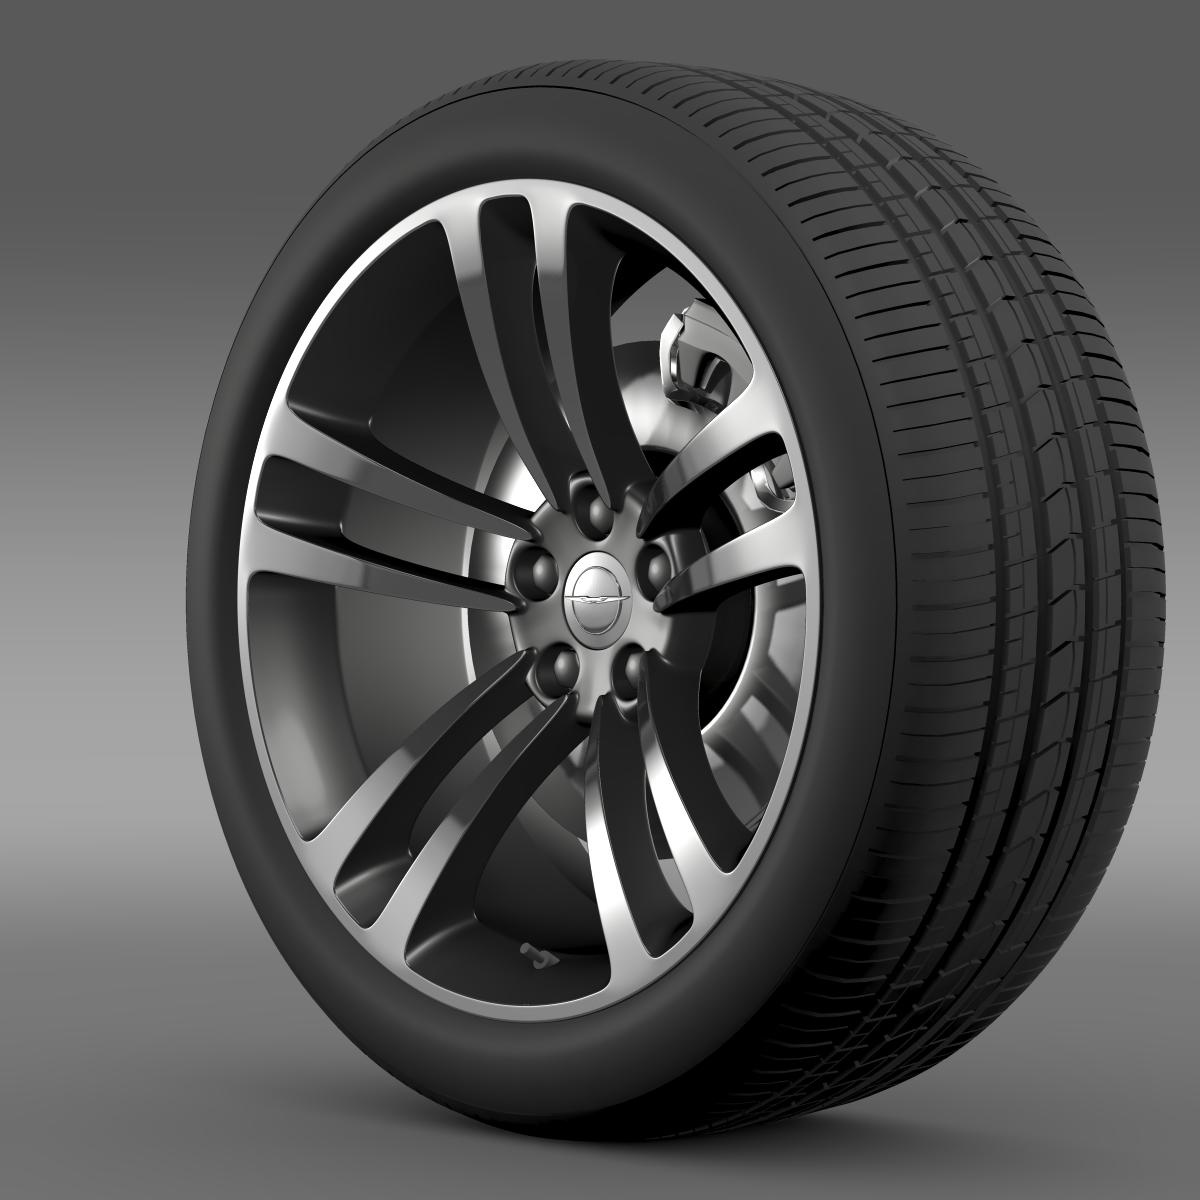 chrysler 300 srt8 core wheel 3d model 3ds max fbx c4d lwo ma mb hrc xsi obj 210626